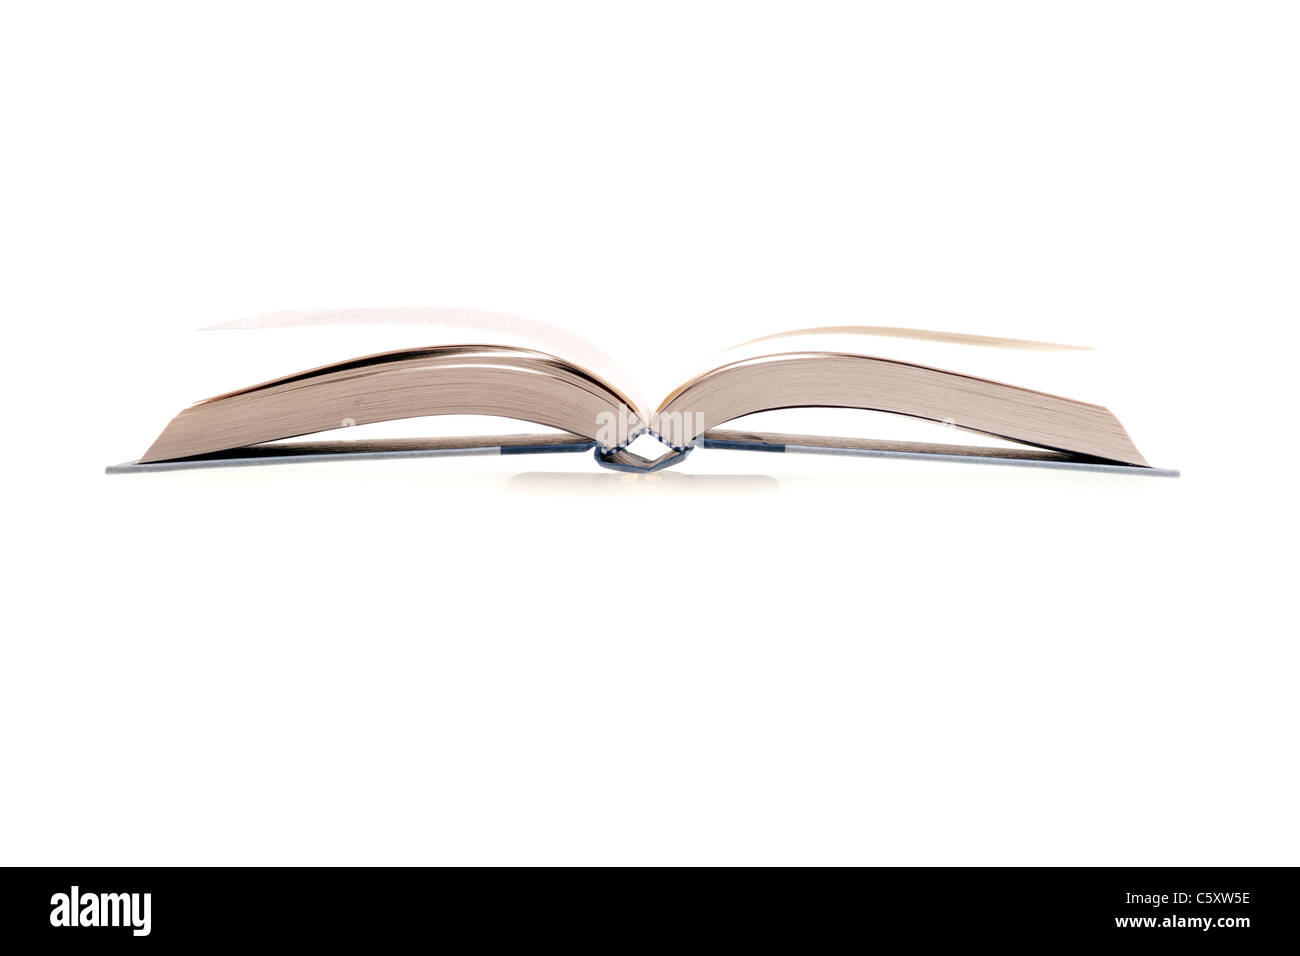 The open book image on white background - Stock Image